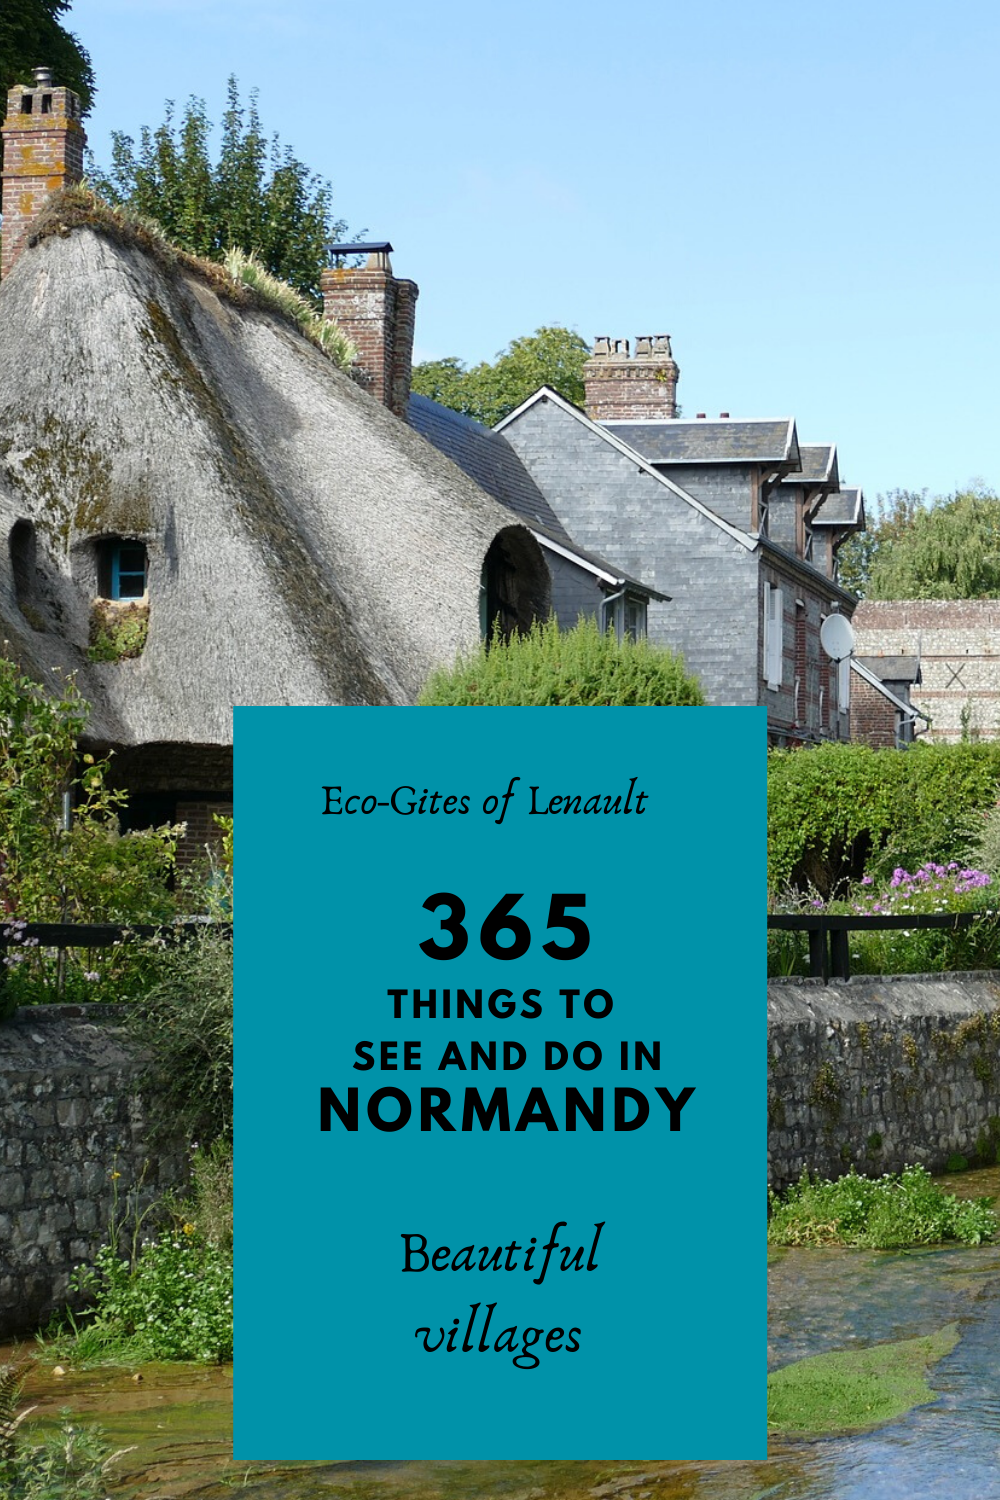 Normandy'd most beautiful villages